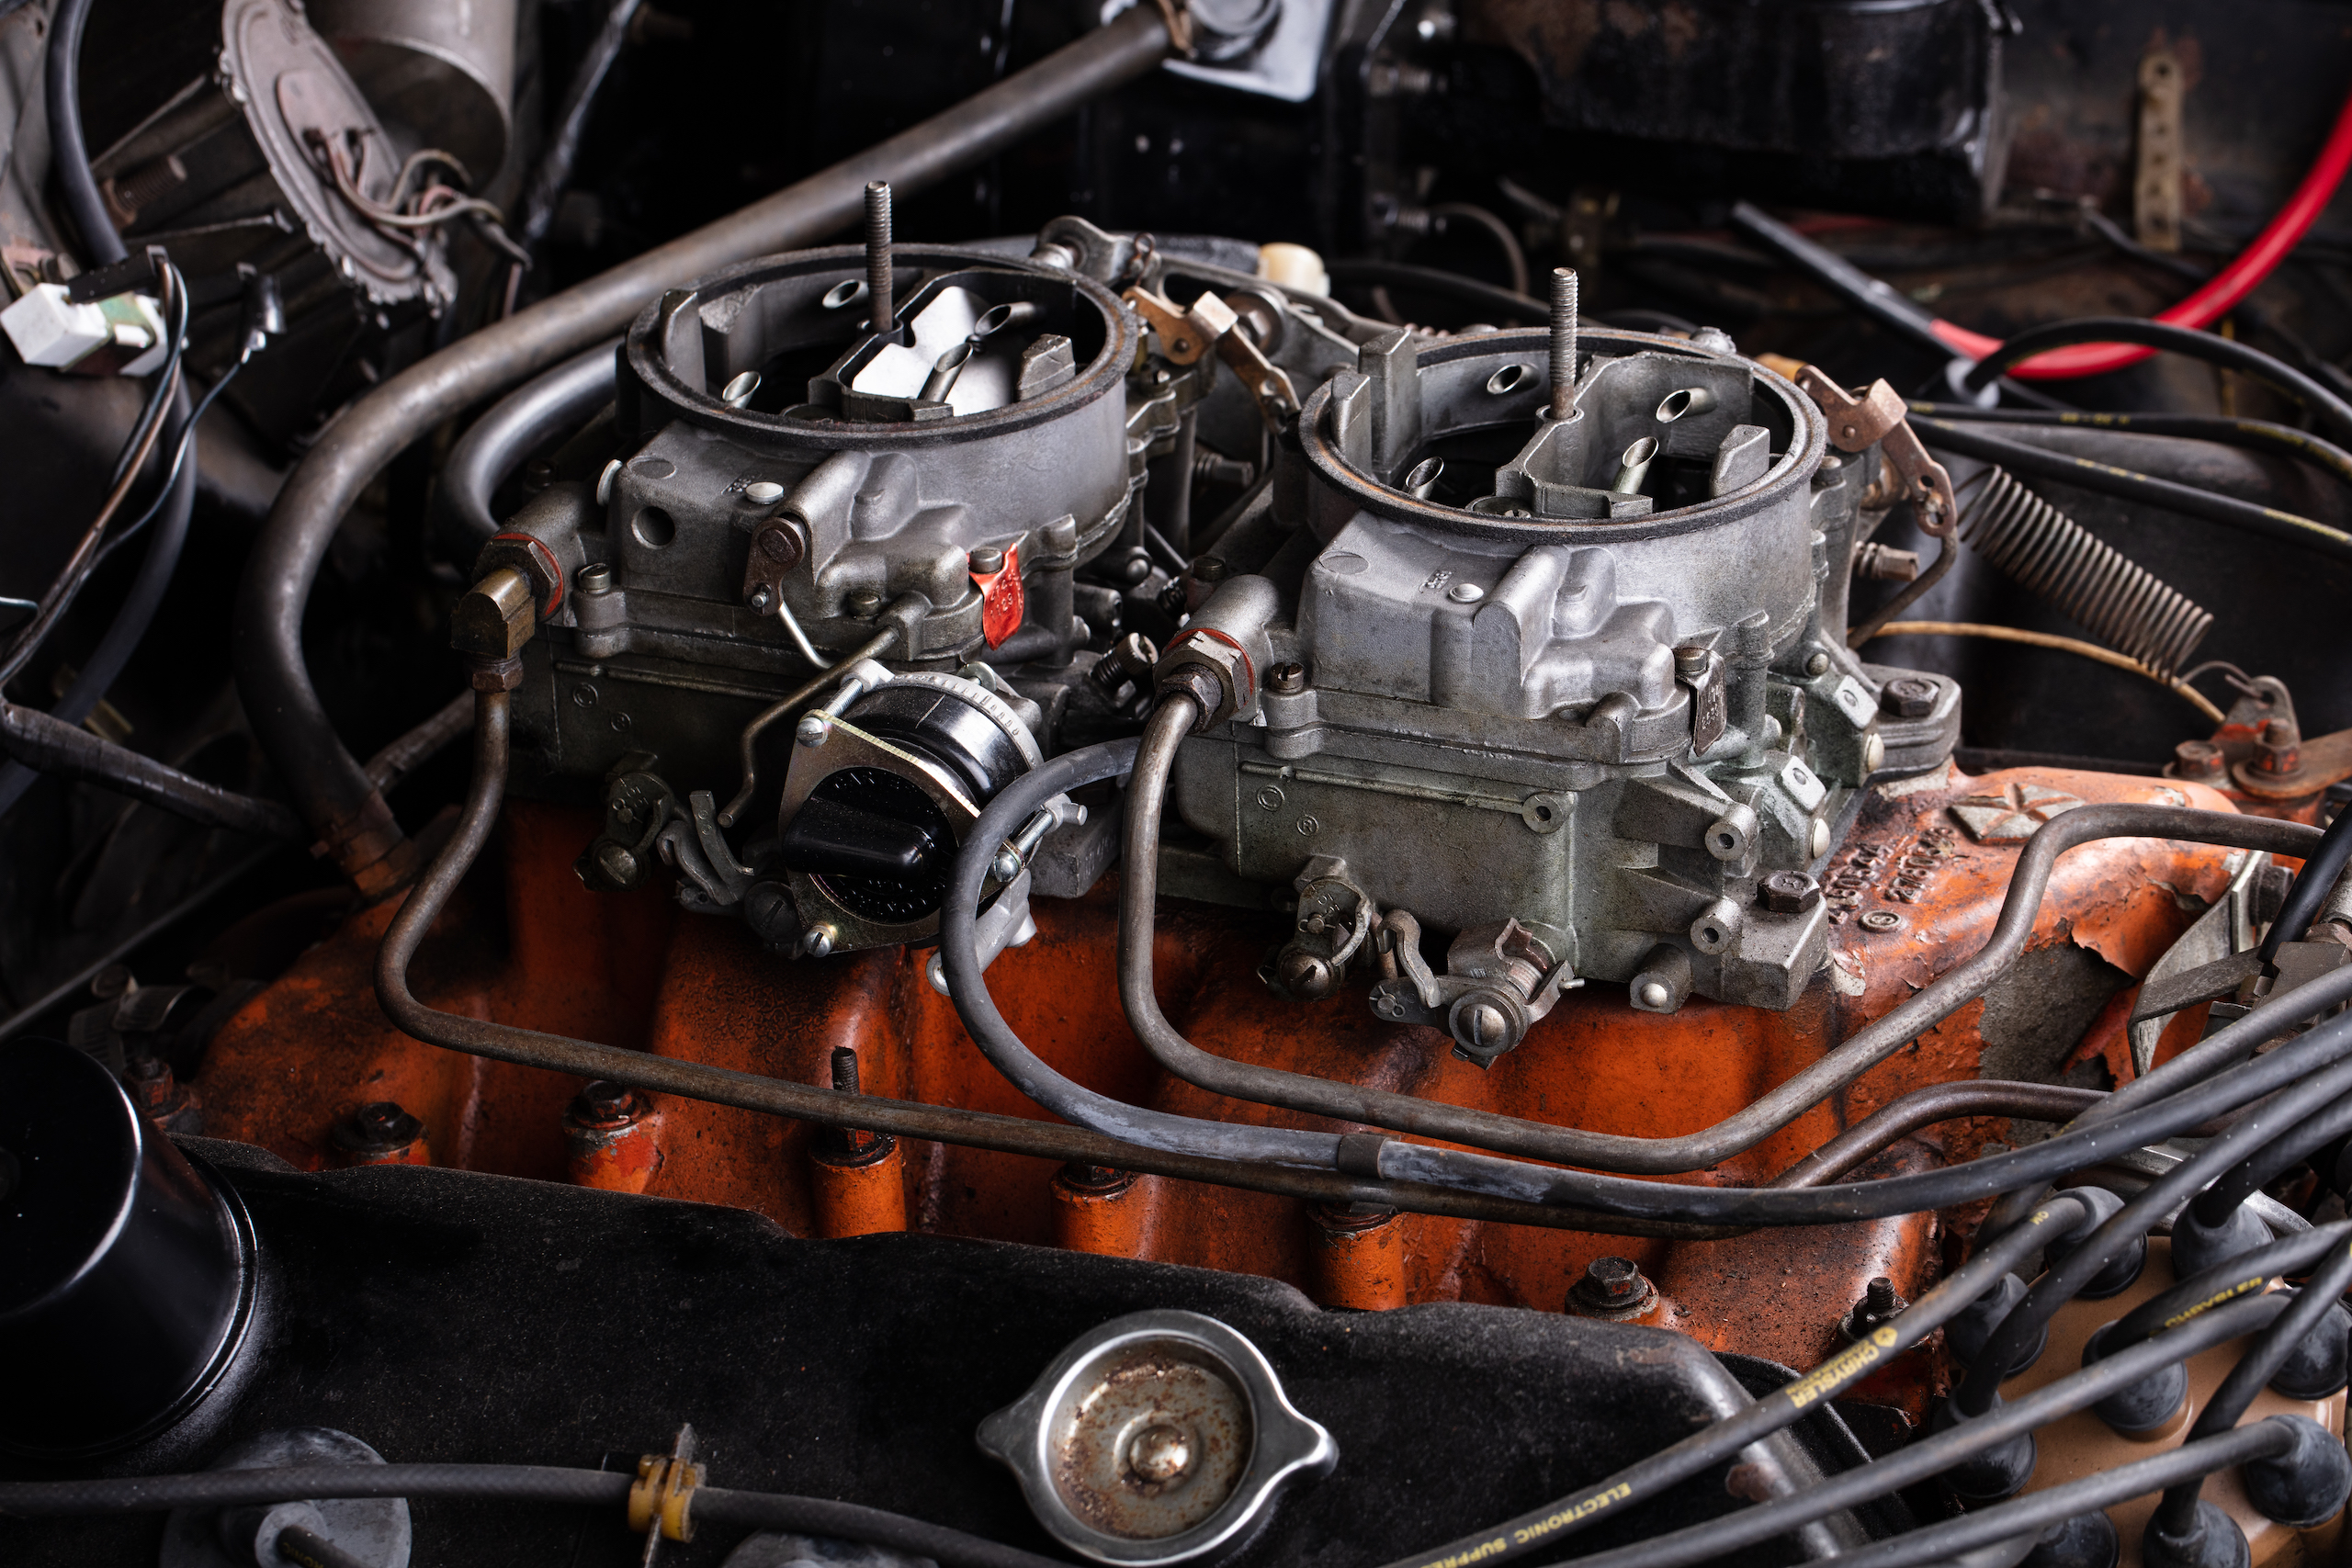 black ghost challenger engine carbs close